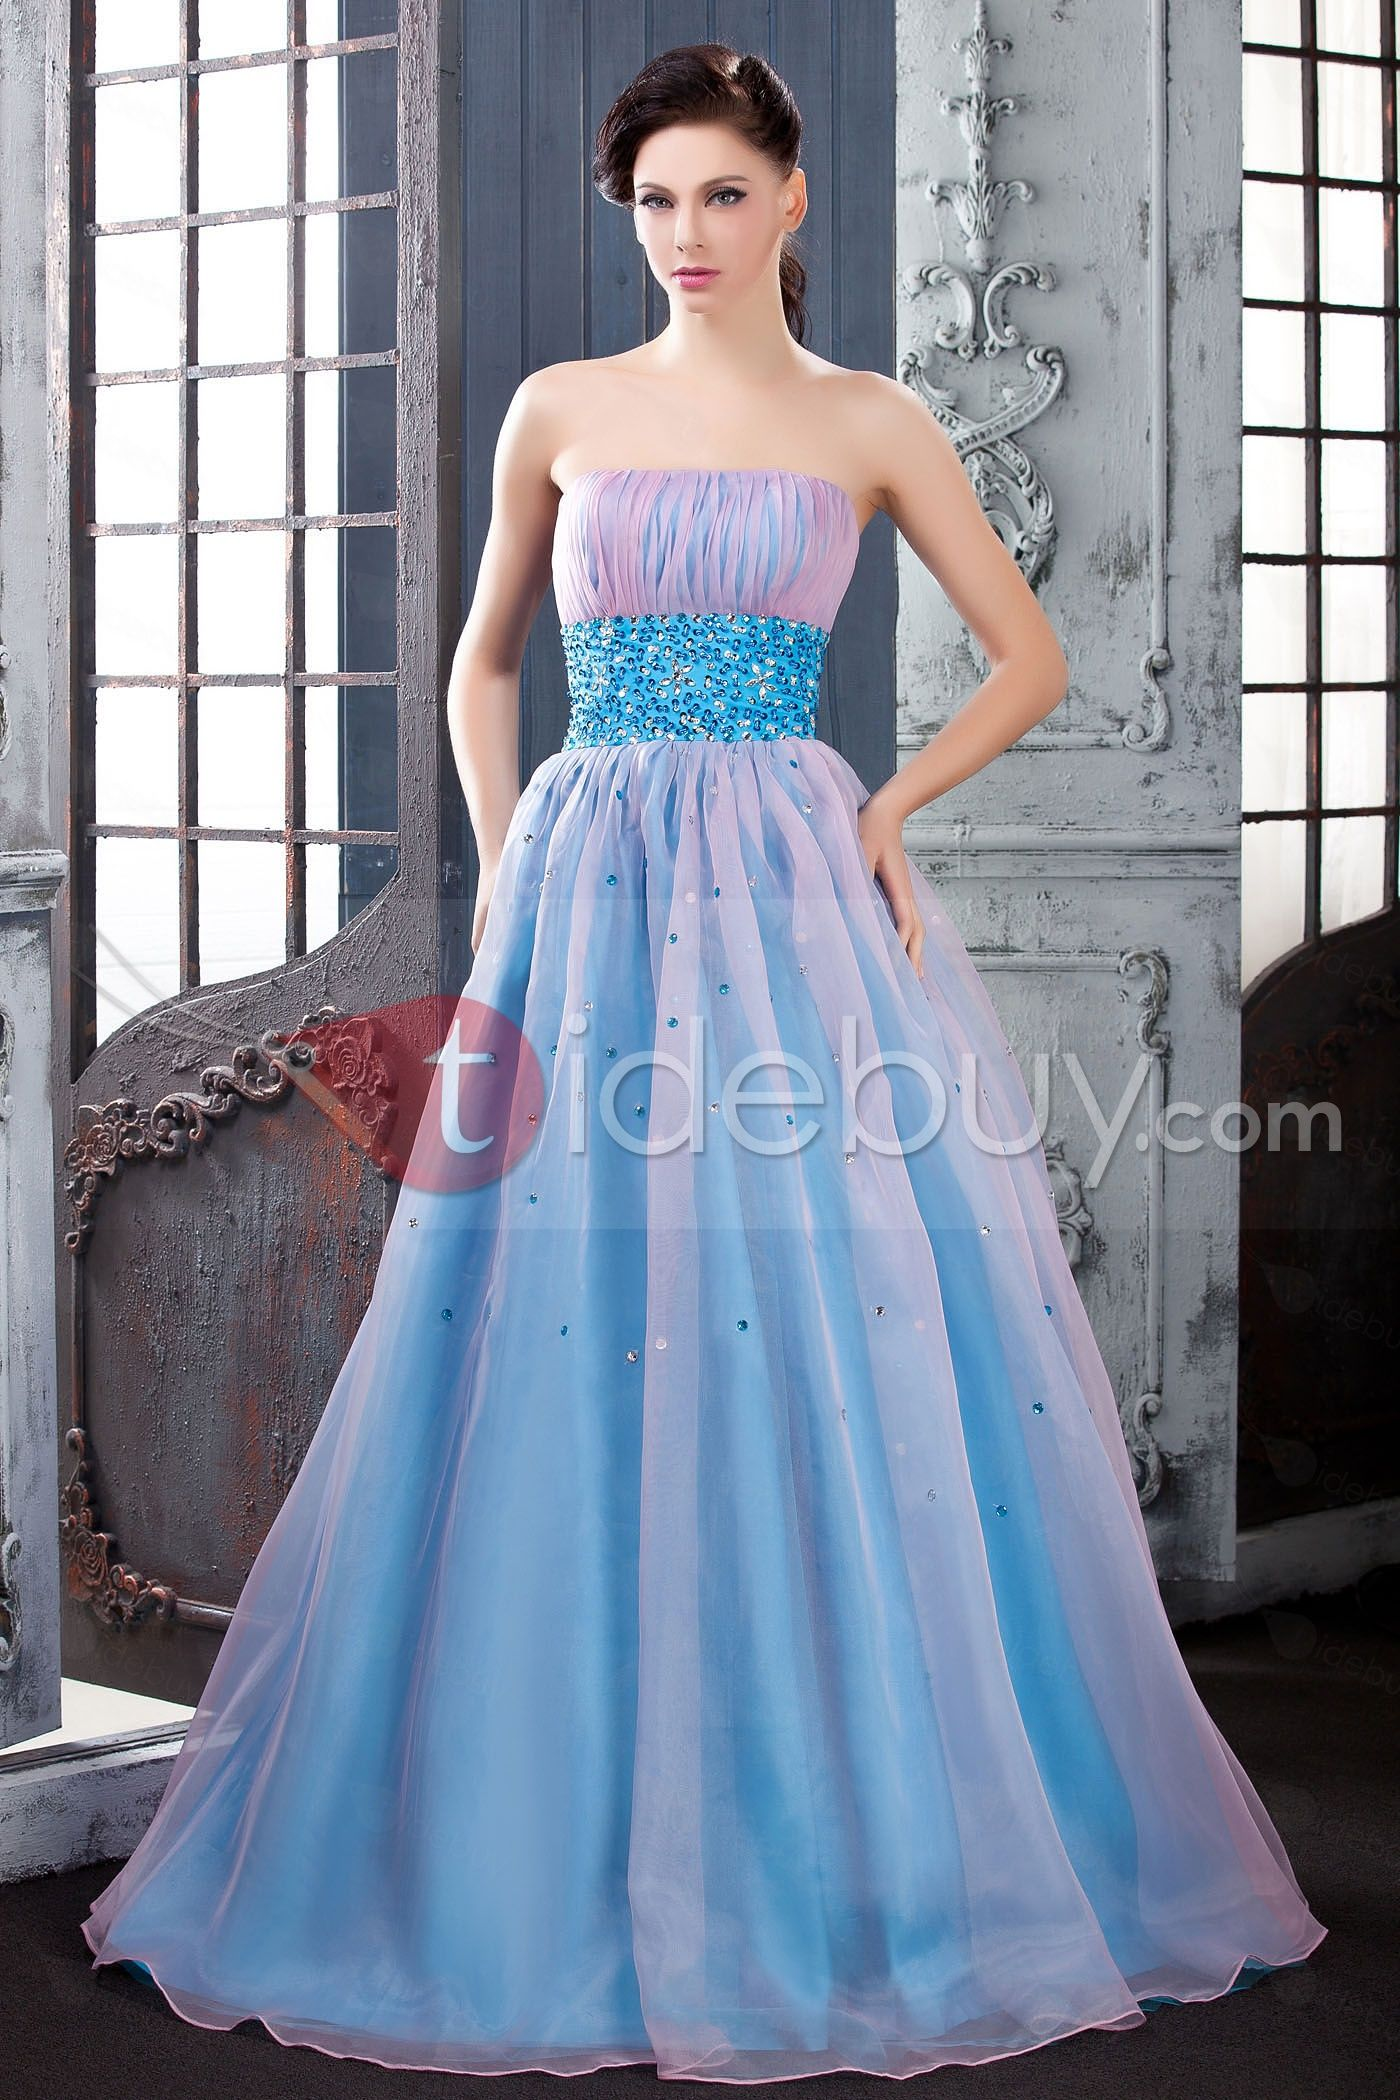 Graceful A-Line Floor-Length Strapless Empire Waistline Beading ...